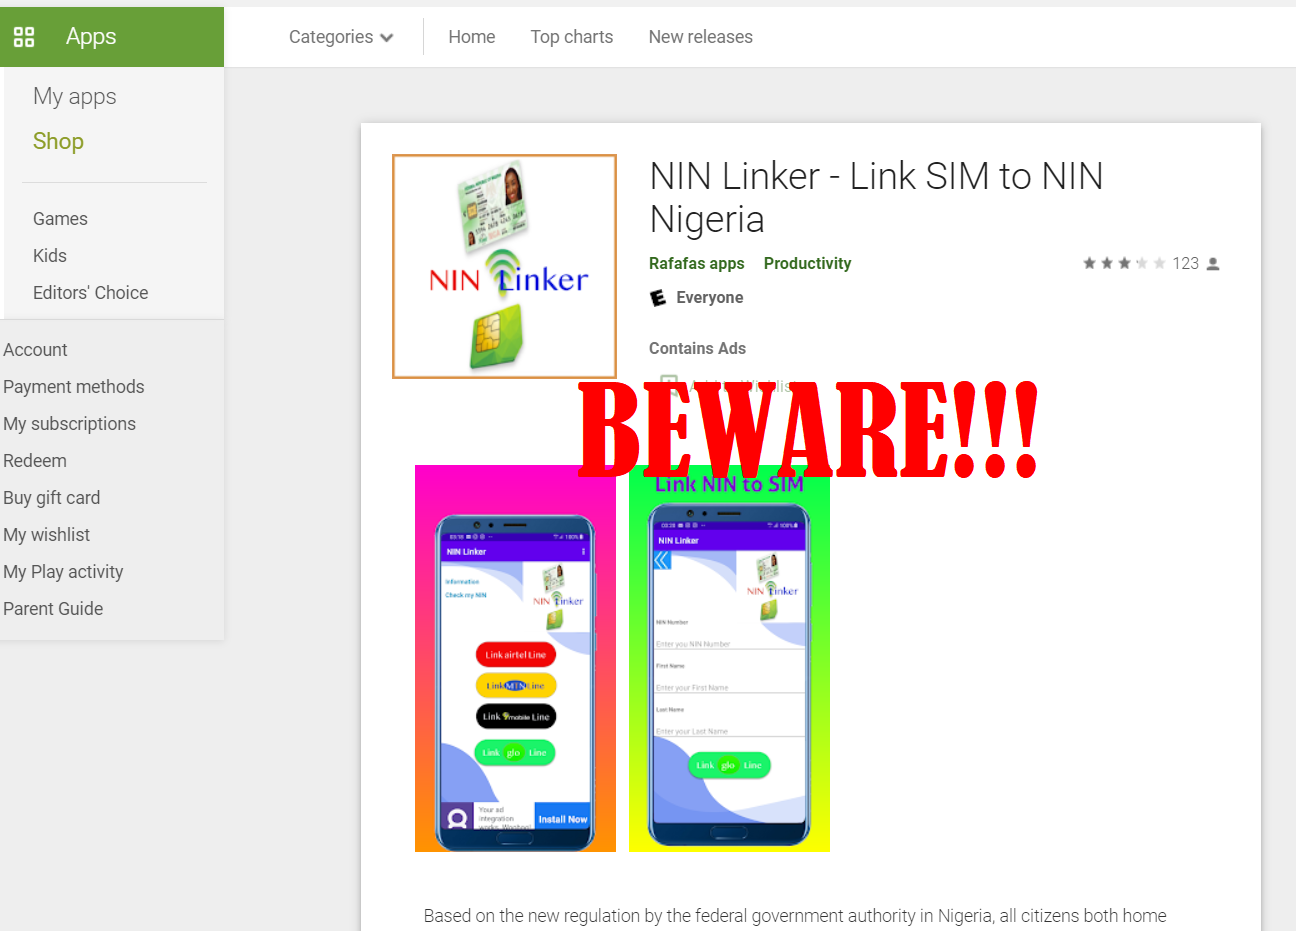 Beware of Unauthorised Apps Asking for your NIN (e.g. NIN Linker)